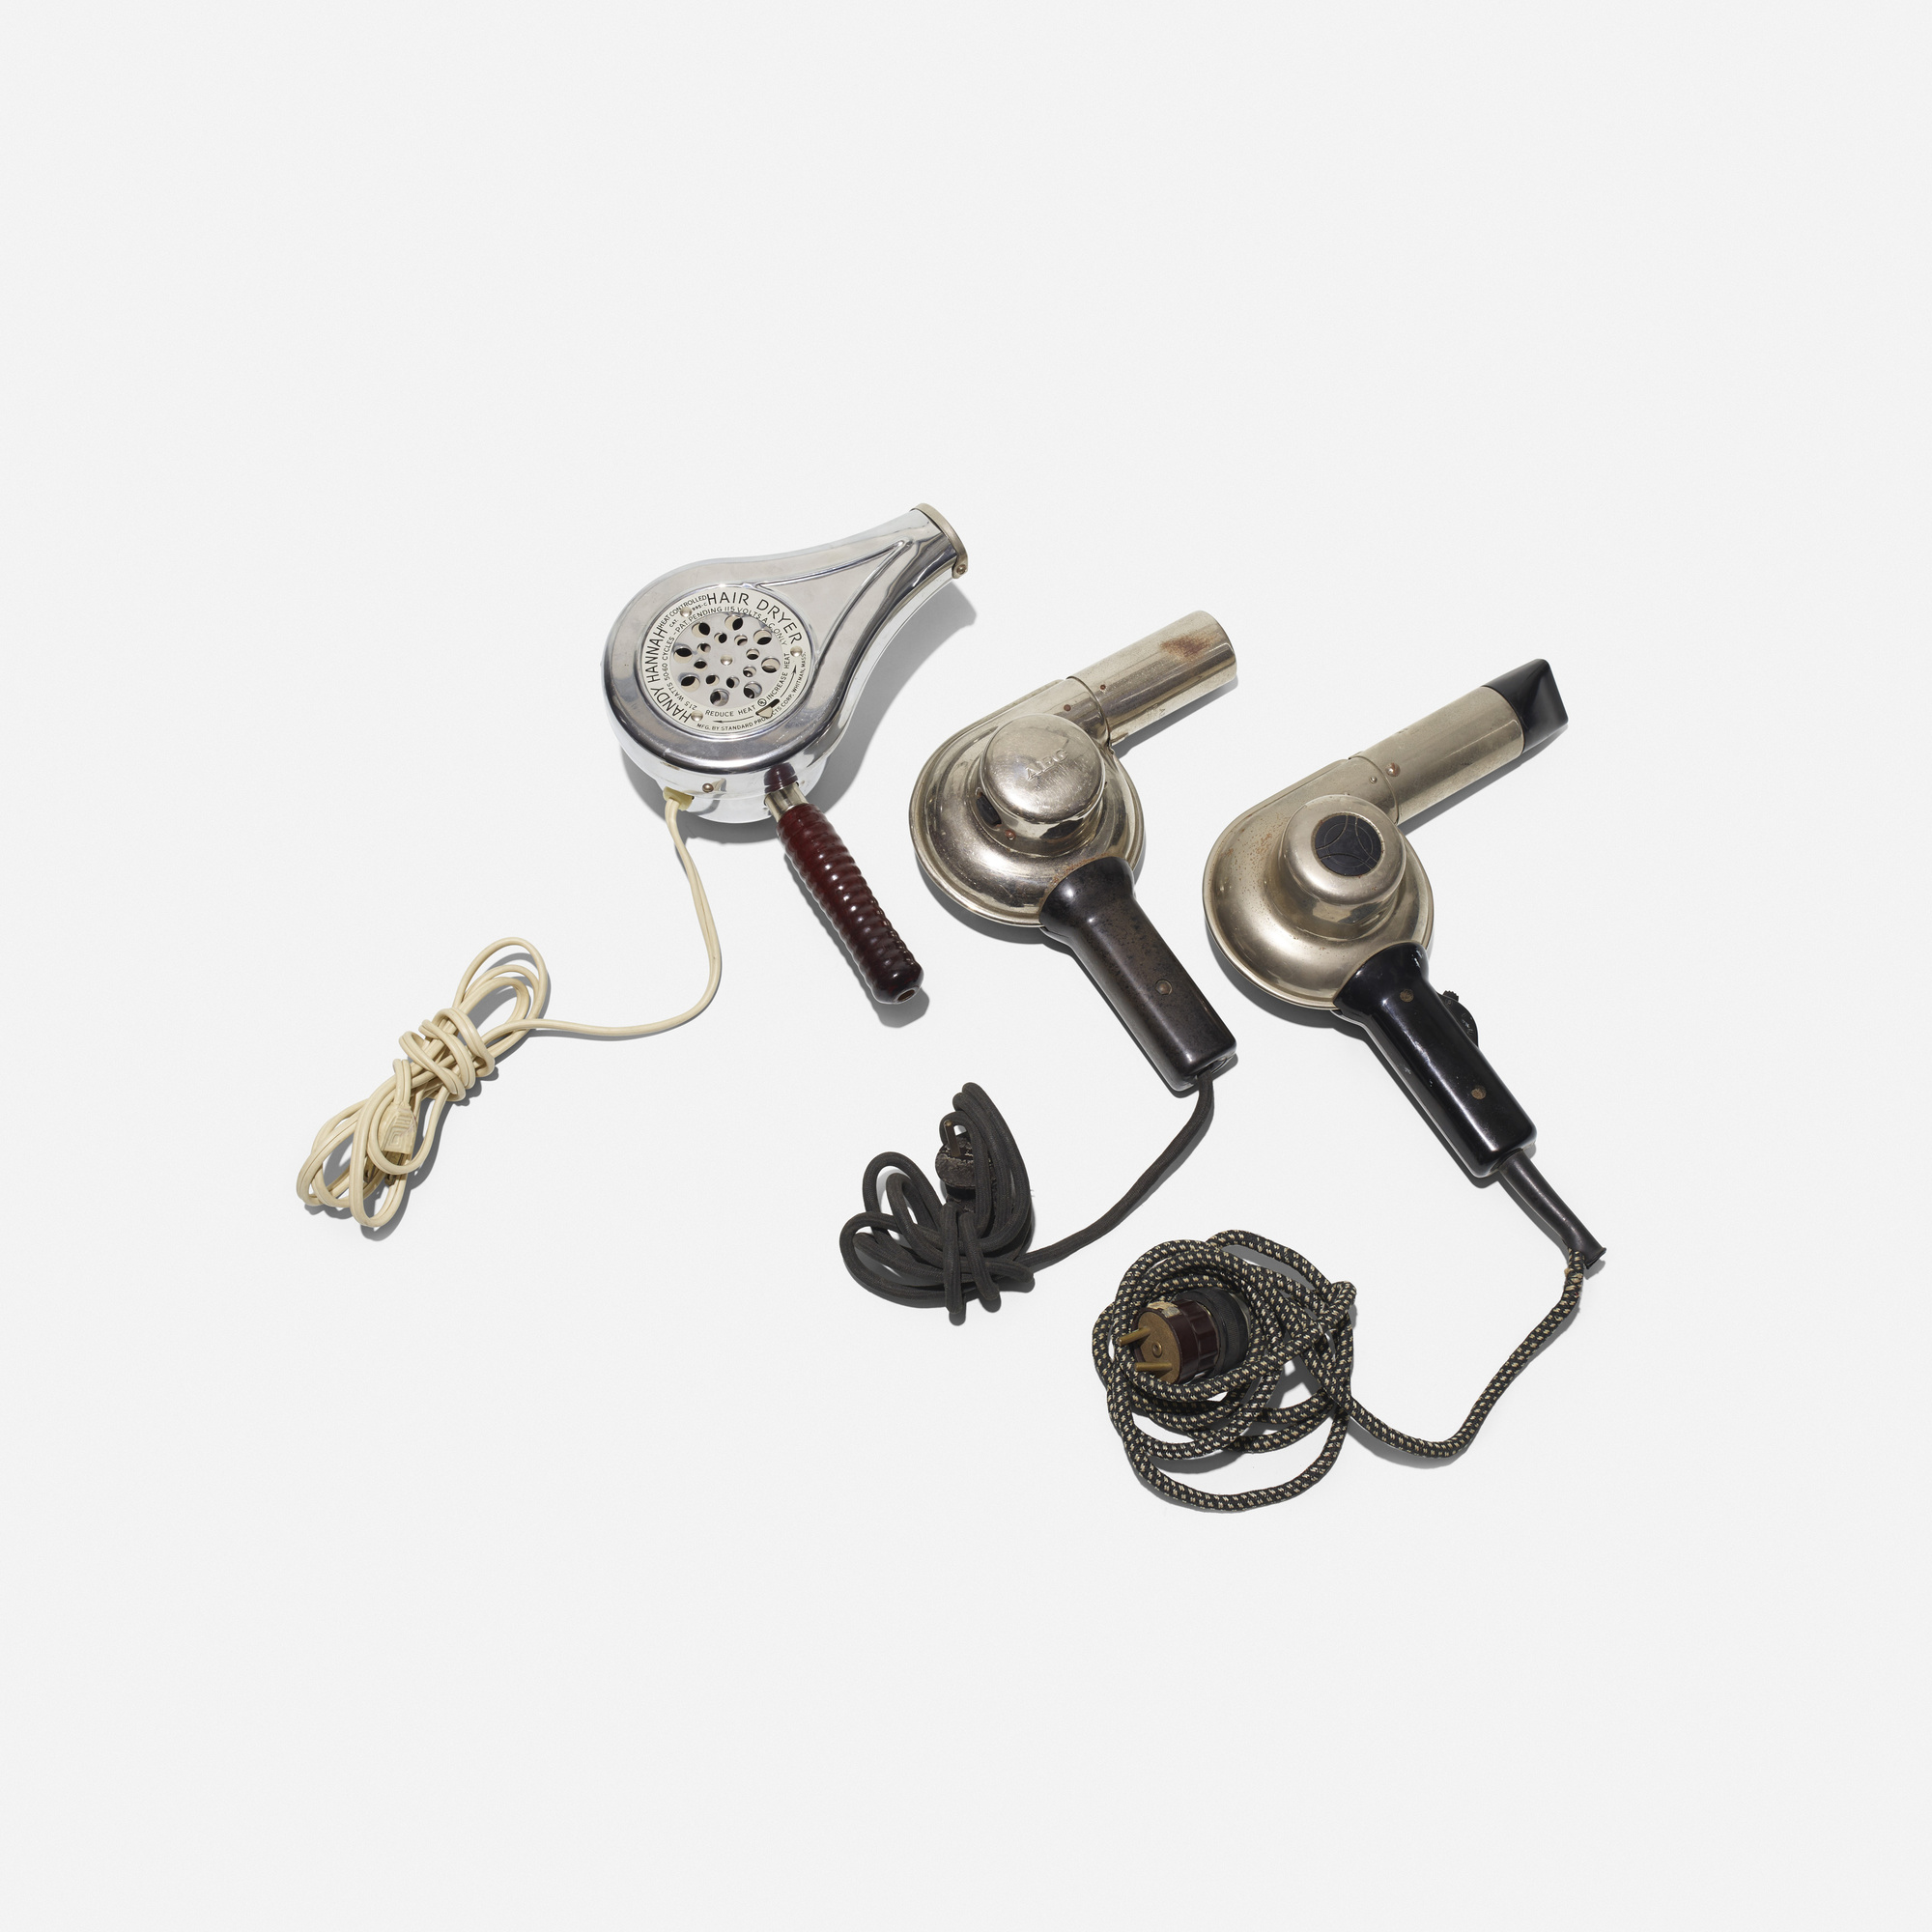 290: Various Artists / collection of three hairdryers (1 of 2)